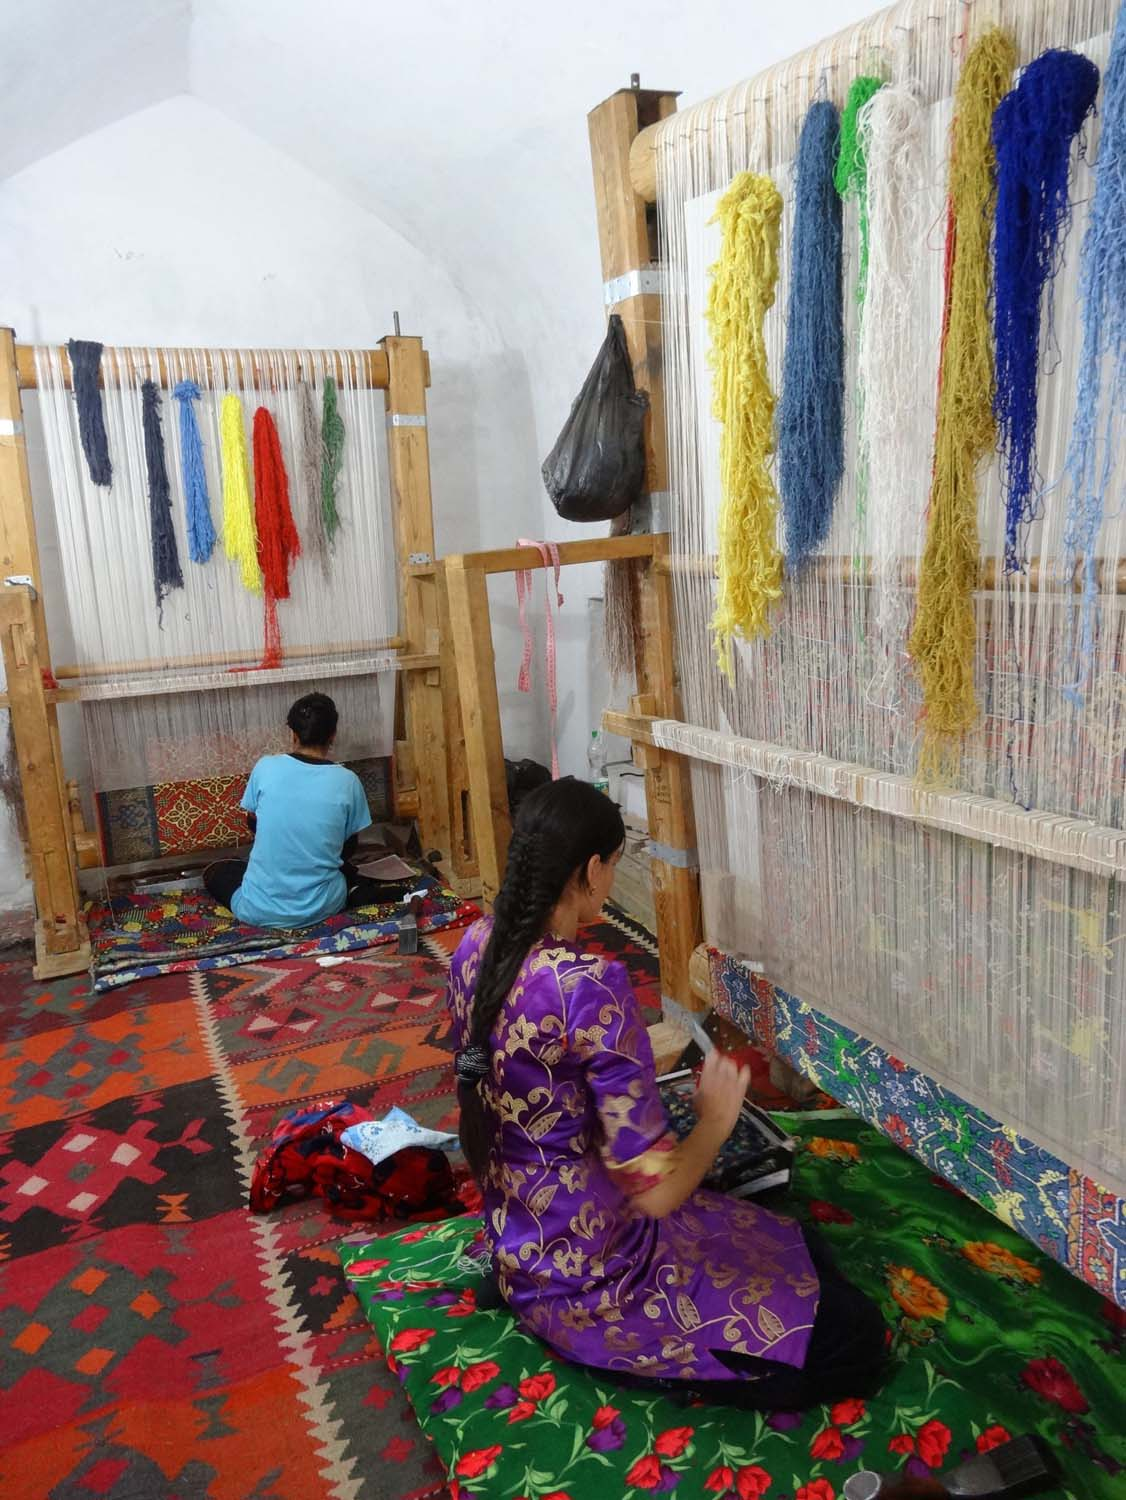 weaving with naturally dyed silk, it takes 6 months to finish one carpet